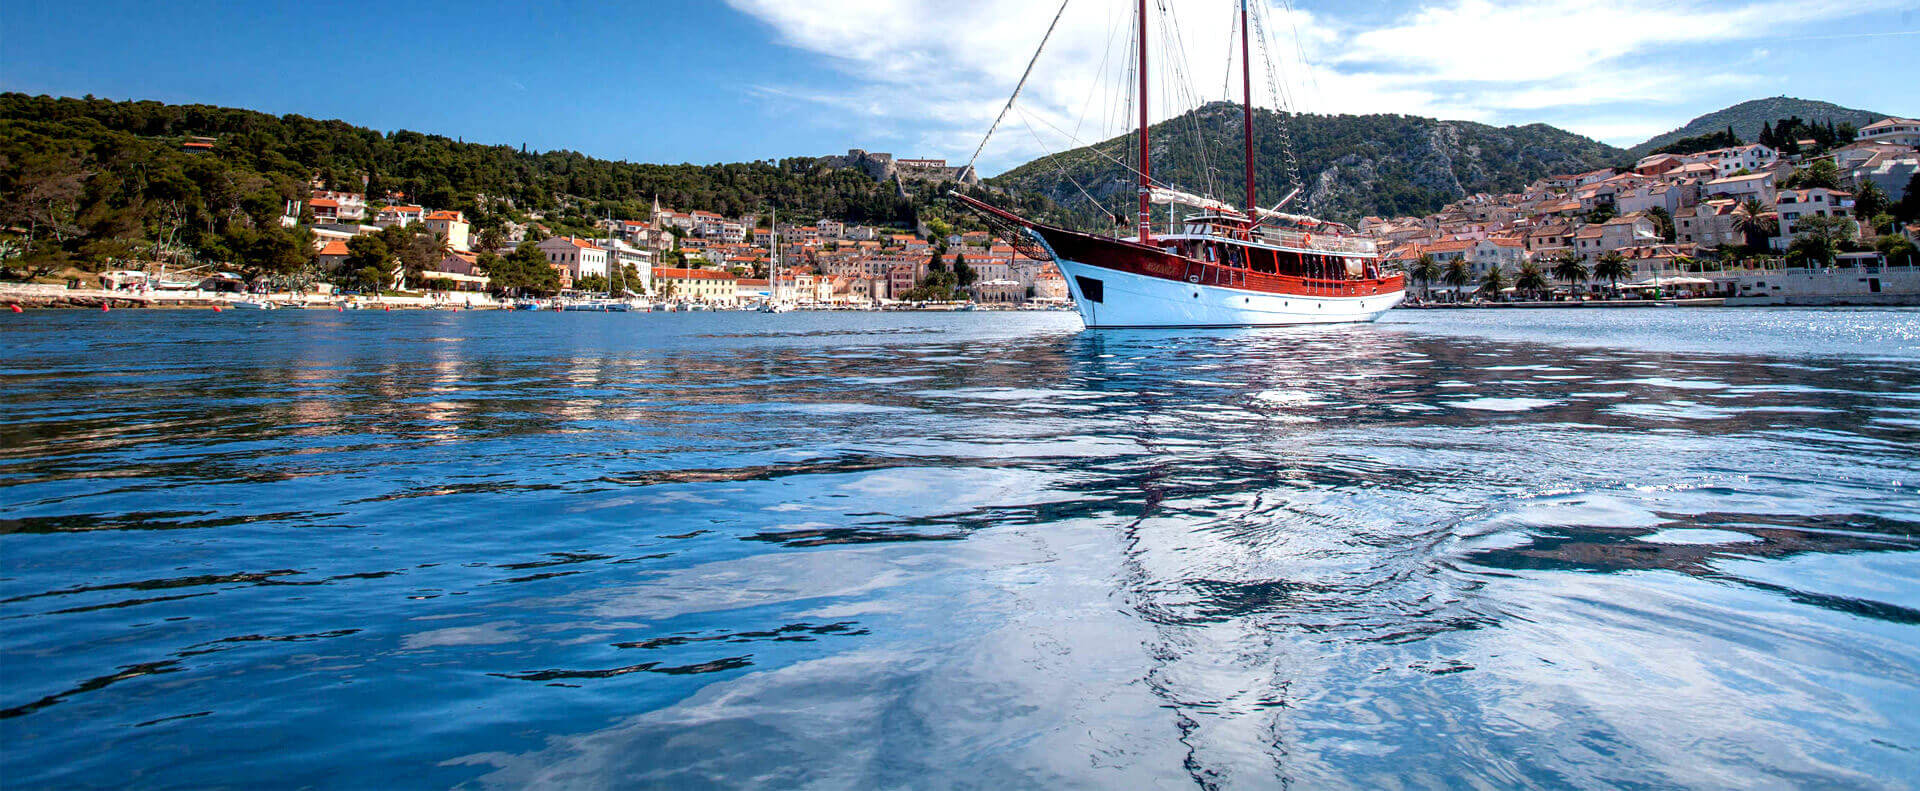 Spend Your Holidays Sailing on a Boat in Croatia